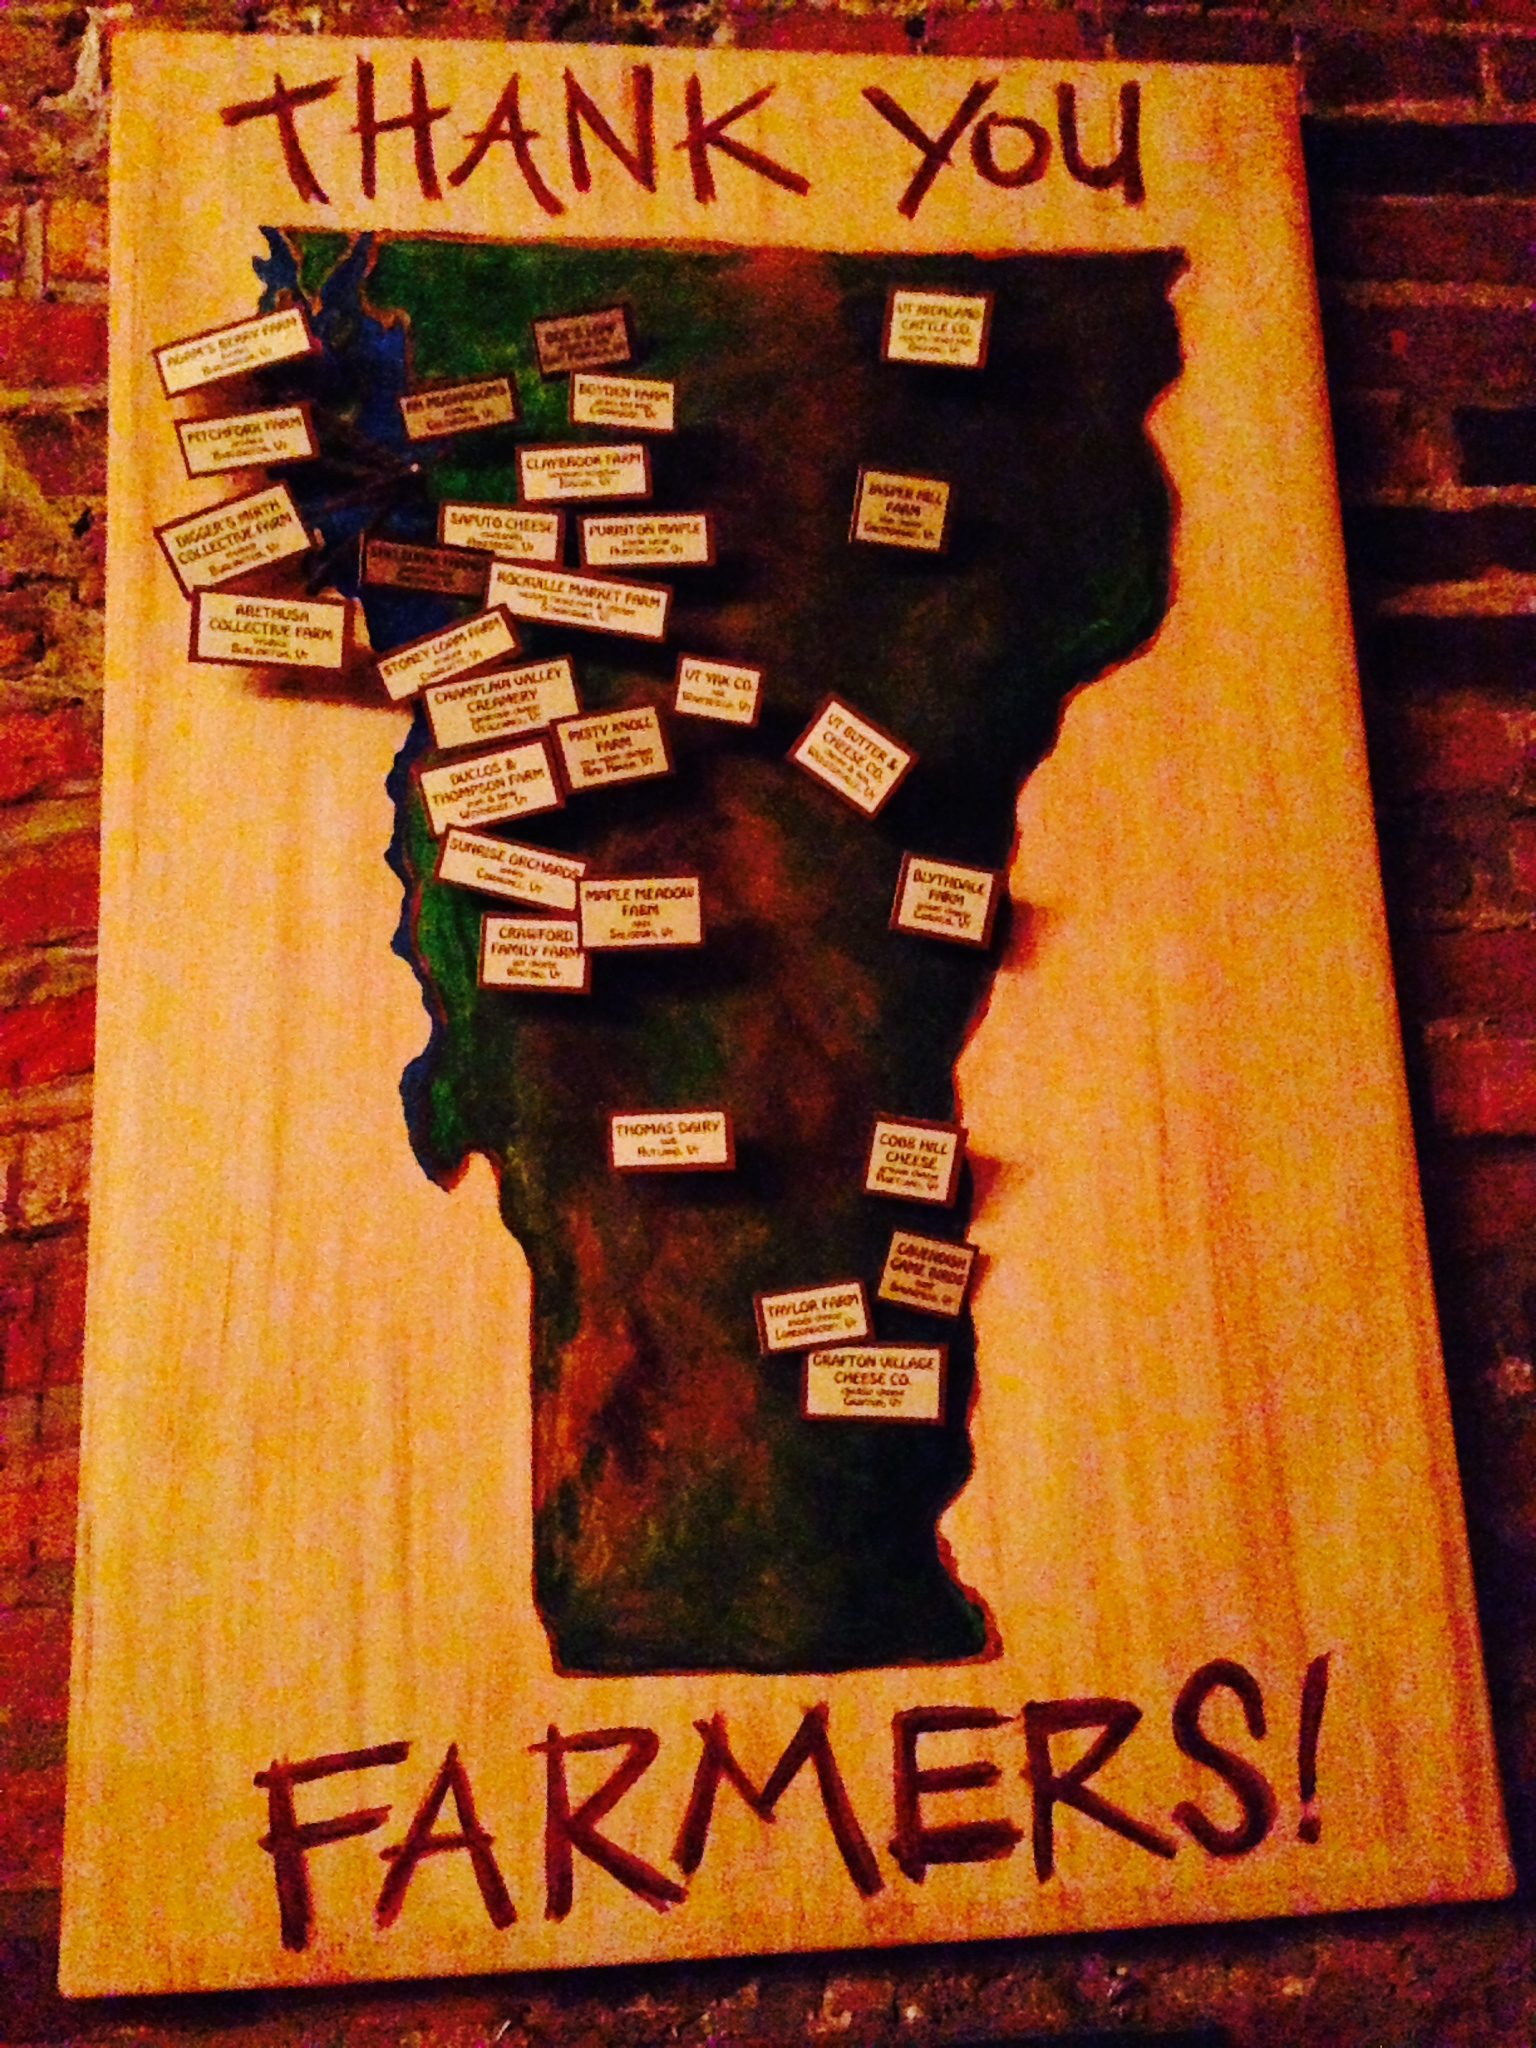 I wasn't kidding about the Vermont food scene, nearly every restaurant and shop (even the UVM cafeteria!) offers one of thesemaps of the locally sourced food. Somehow, better ingredients do make for more delicious dishes! Our daughter rated UVM's food at the top of her list for colleges!